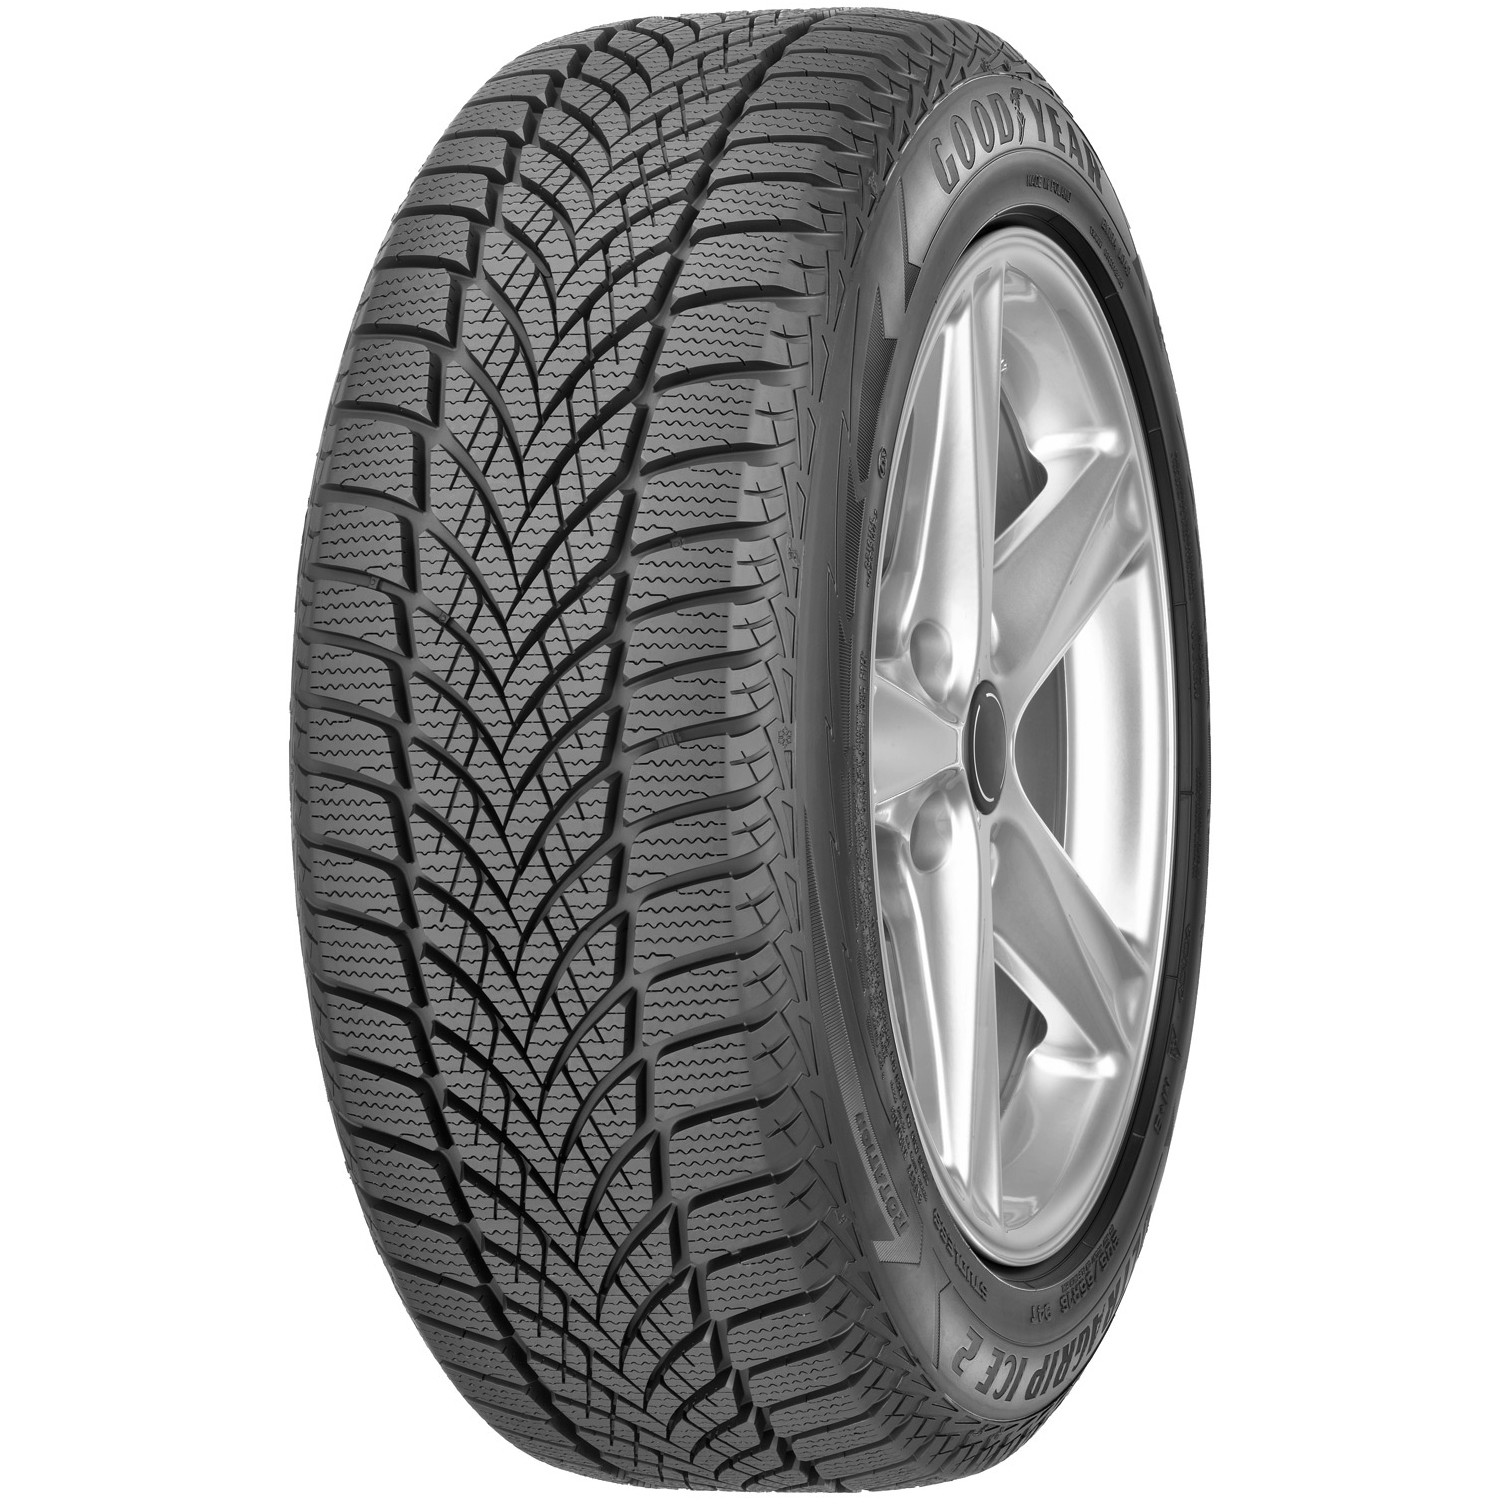 Автошина GOODYEAR ULTRAGRIP ICE 2 175/65 R14 86T Зима